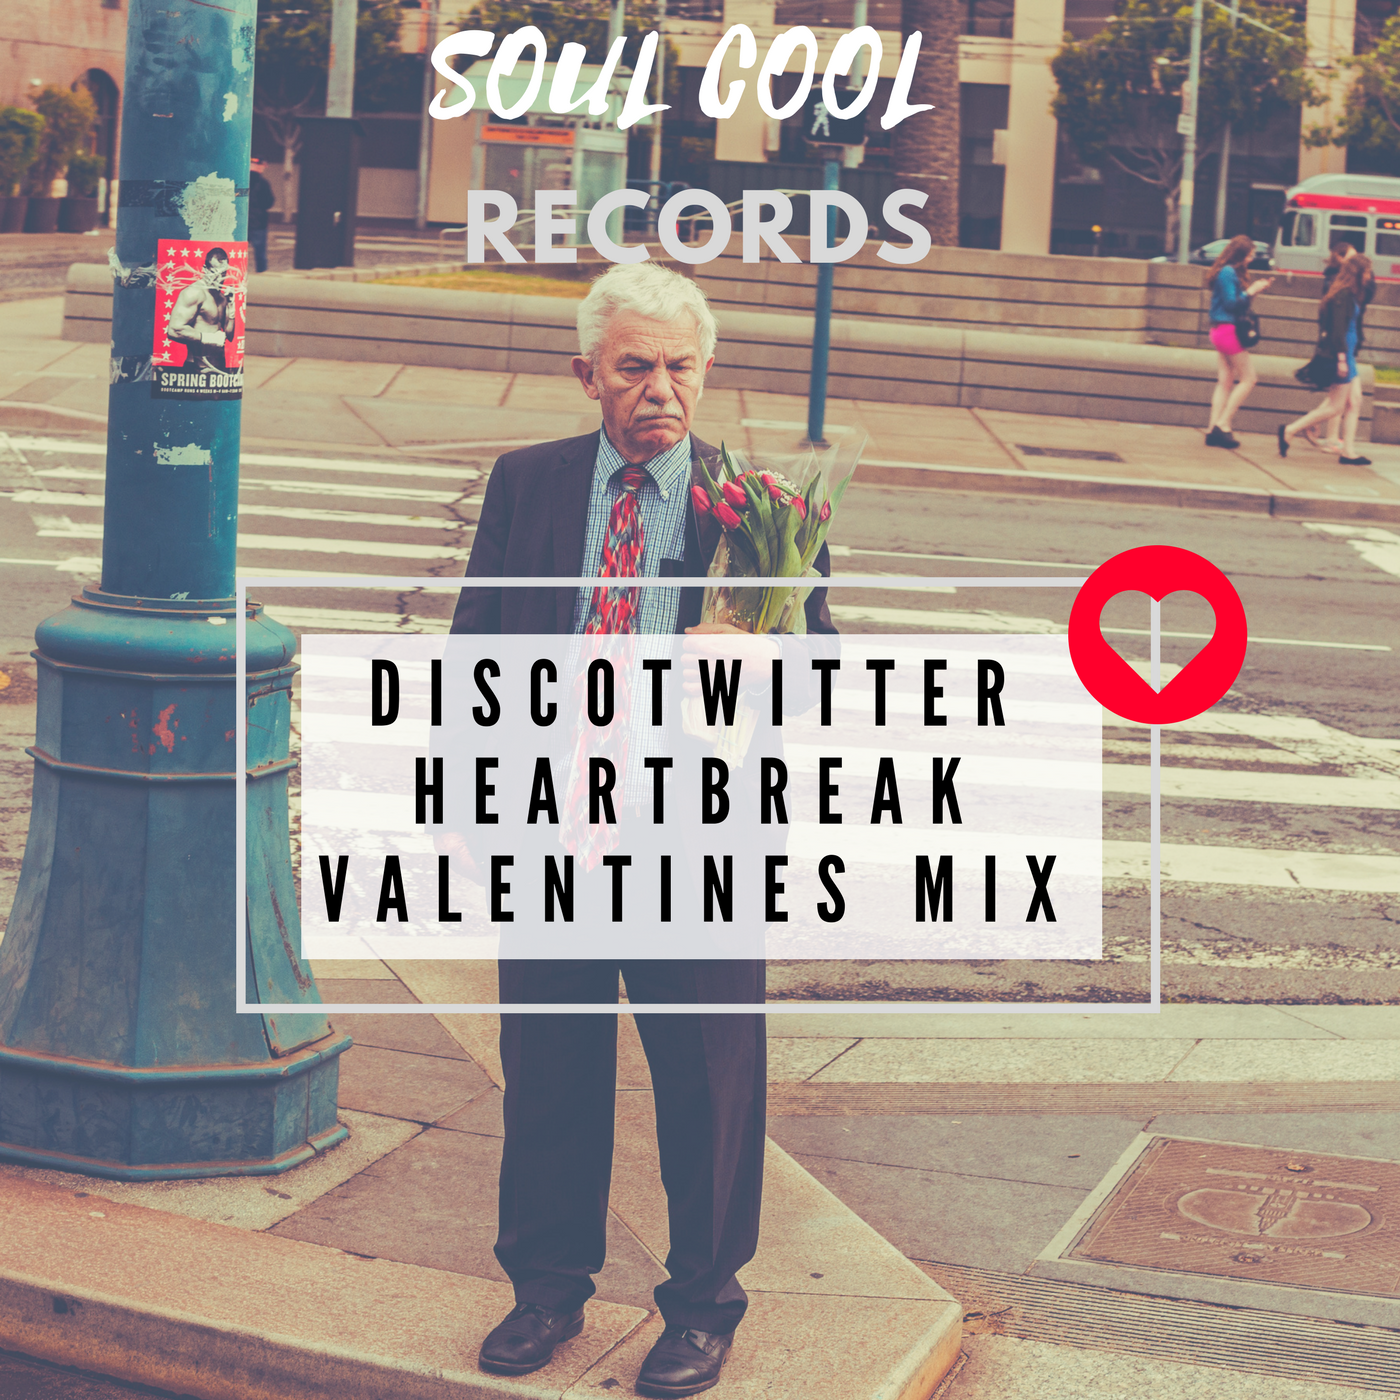 Soul Cool Records | DiscoTwitter Heartbreak Valentines Mixtape